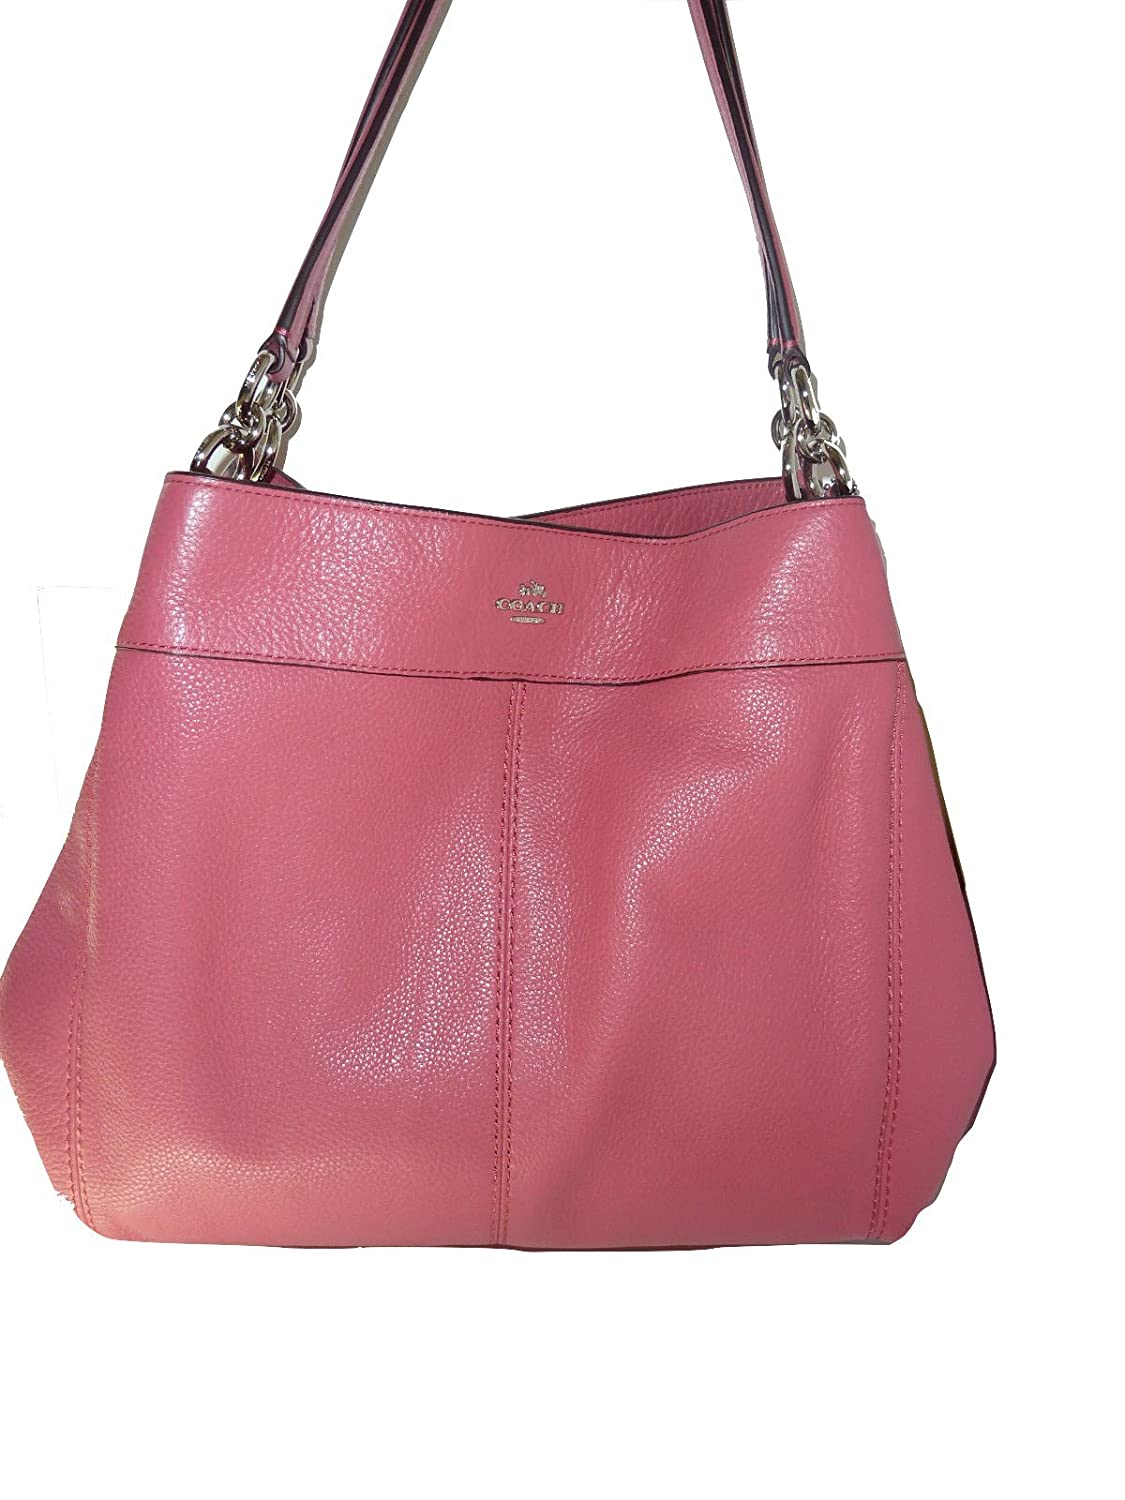 Coach Lexy Shoulder Bag In Pebbled Leather F57545 Imitation Gold ...